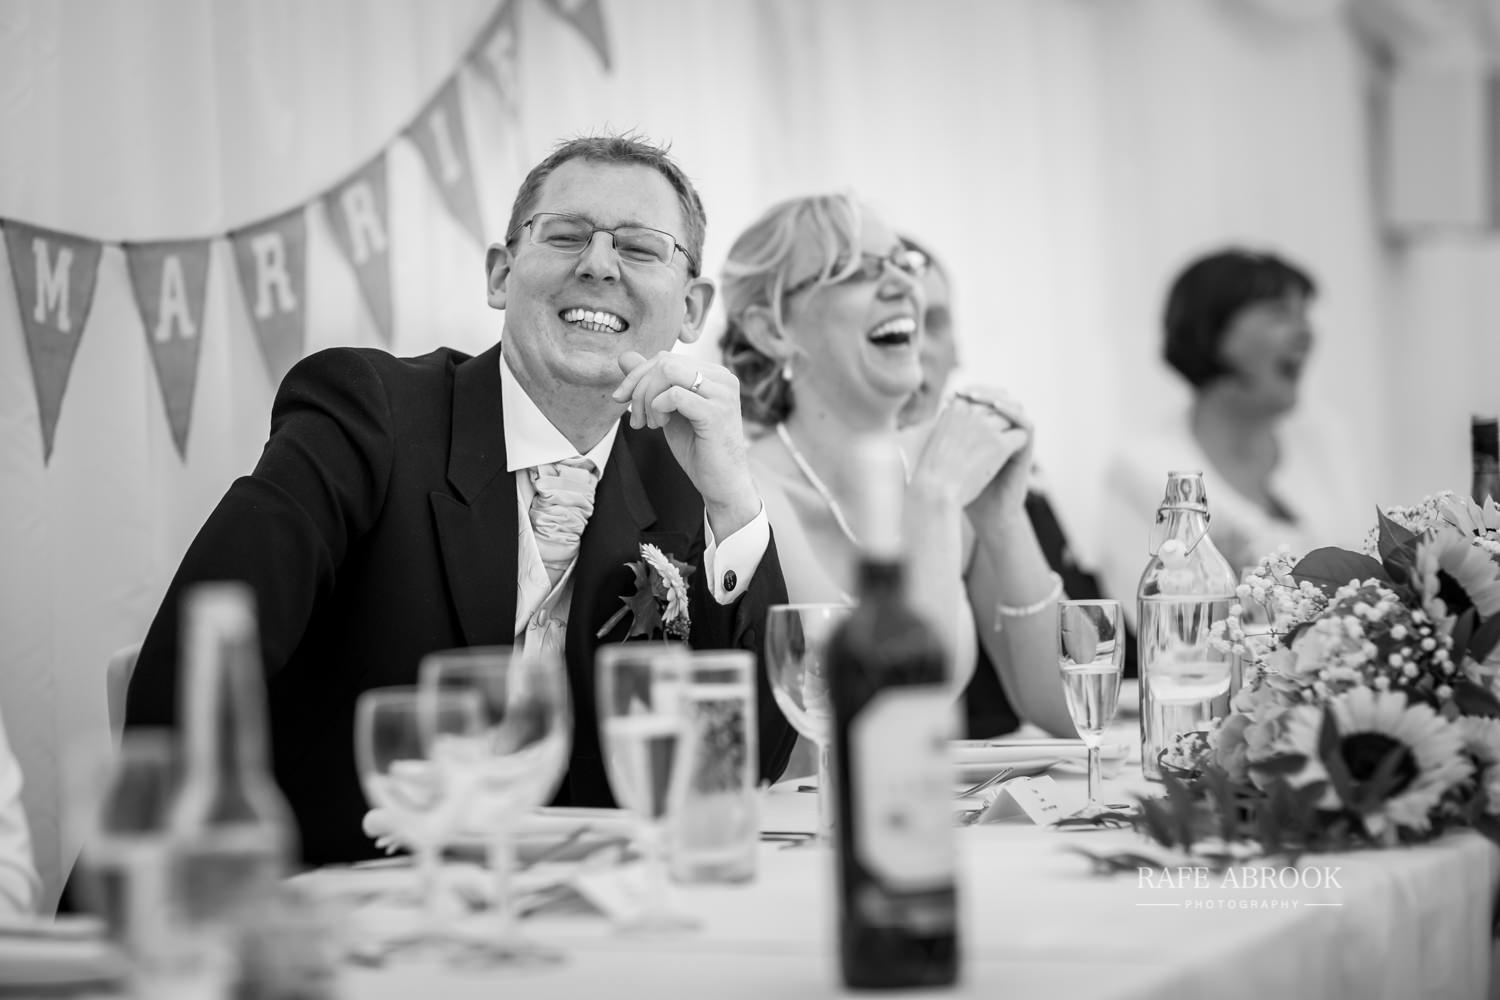 minstrel court wedding royston cambridge hertfordshire wedding photographer-1383.jpg